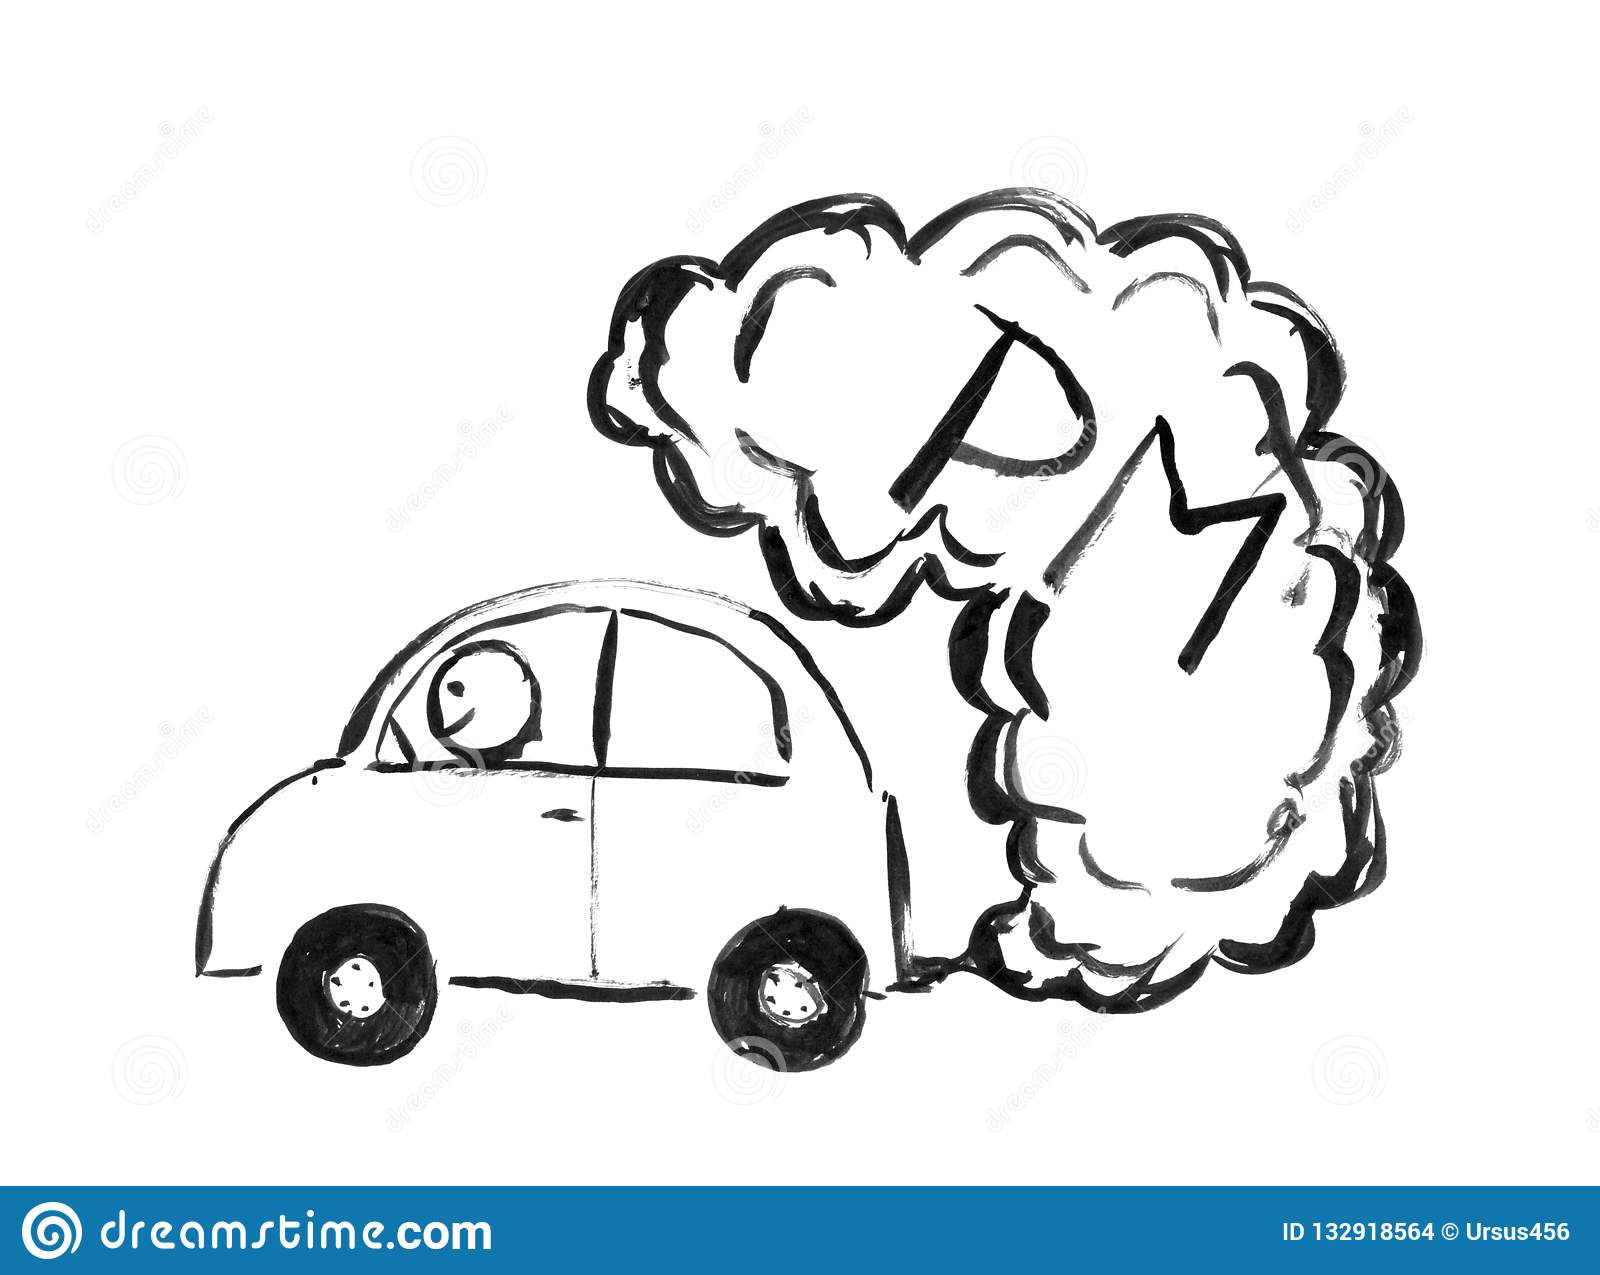 Black brush and ink artistic rough hand drawing of smoke coming from car exhaust into air environmental concept of pm or particulate matter pollution